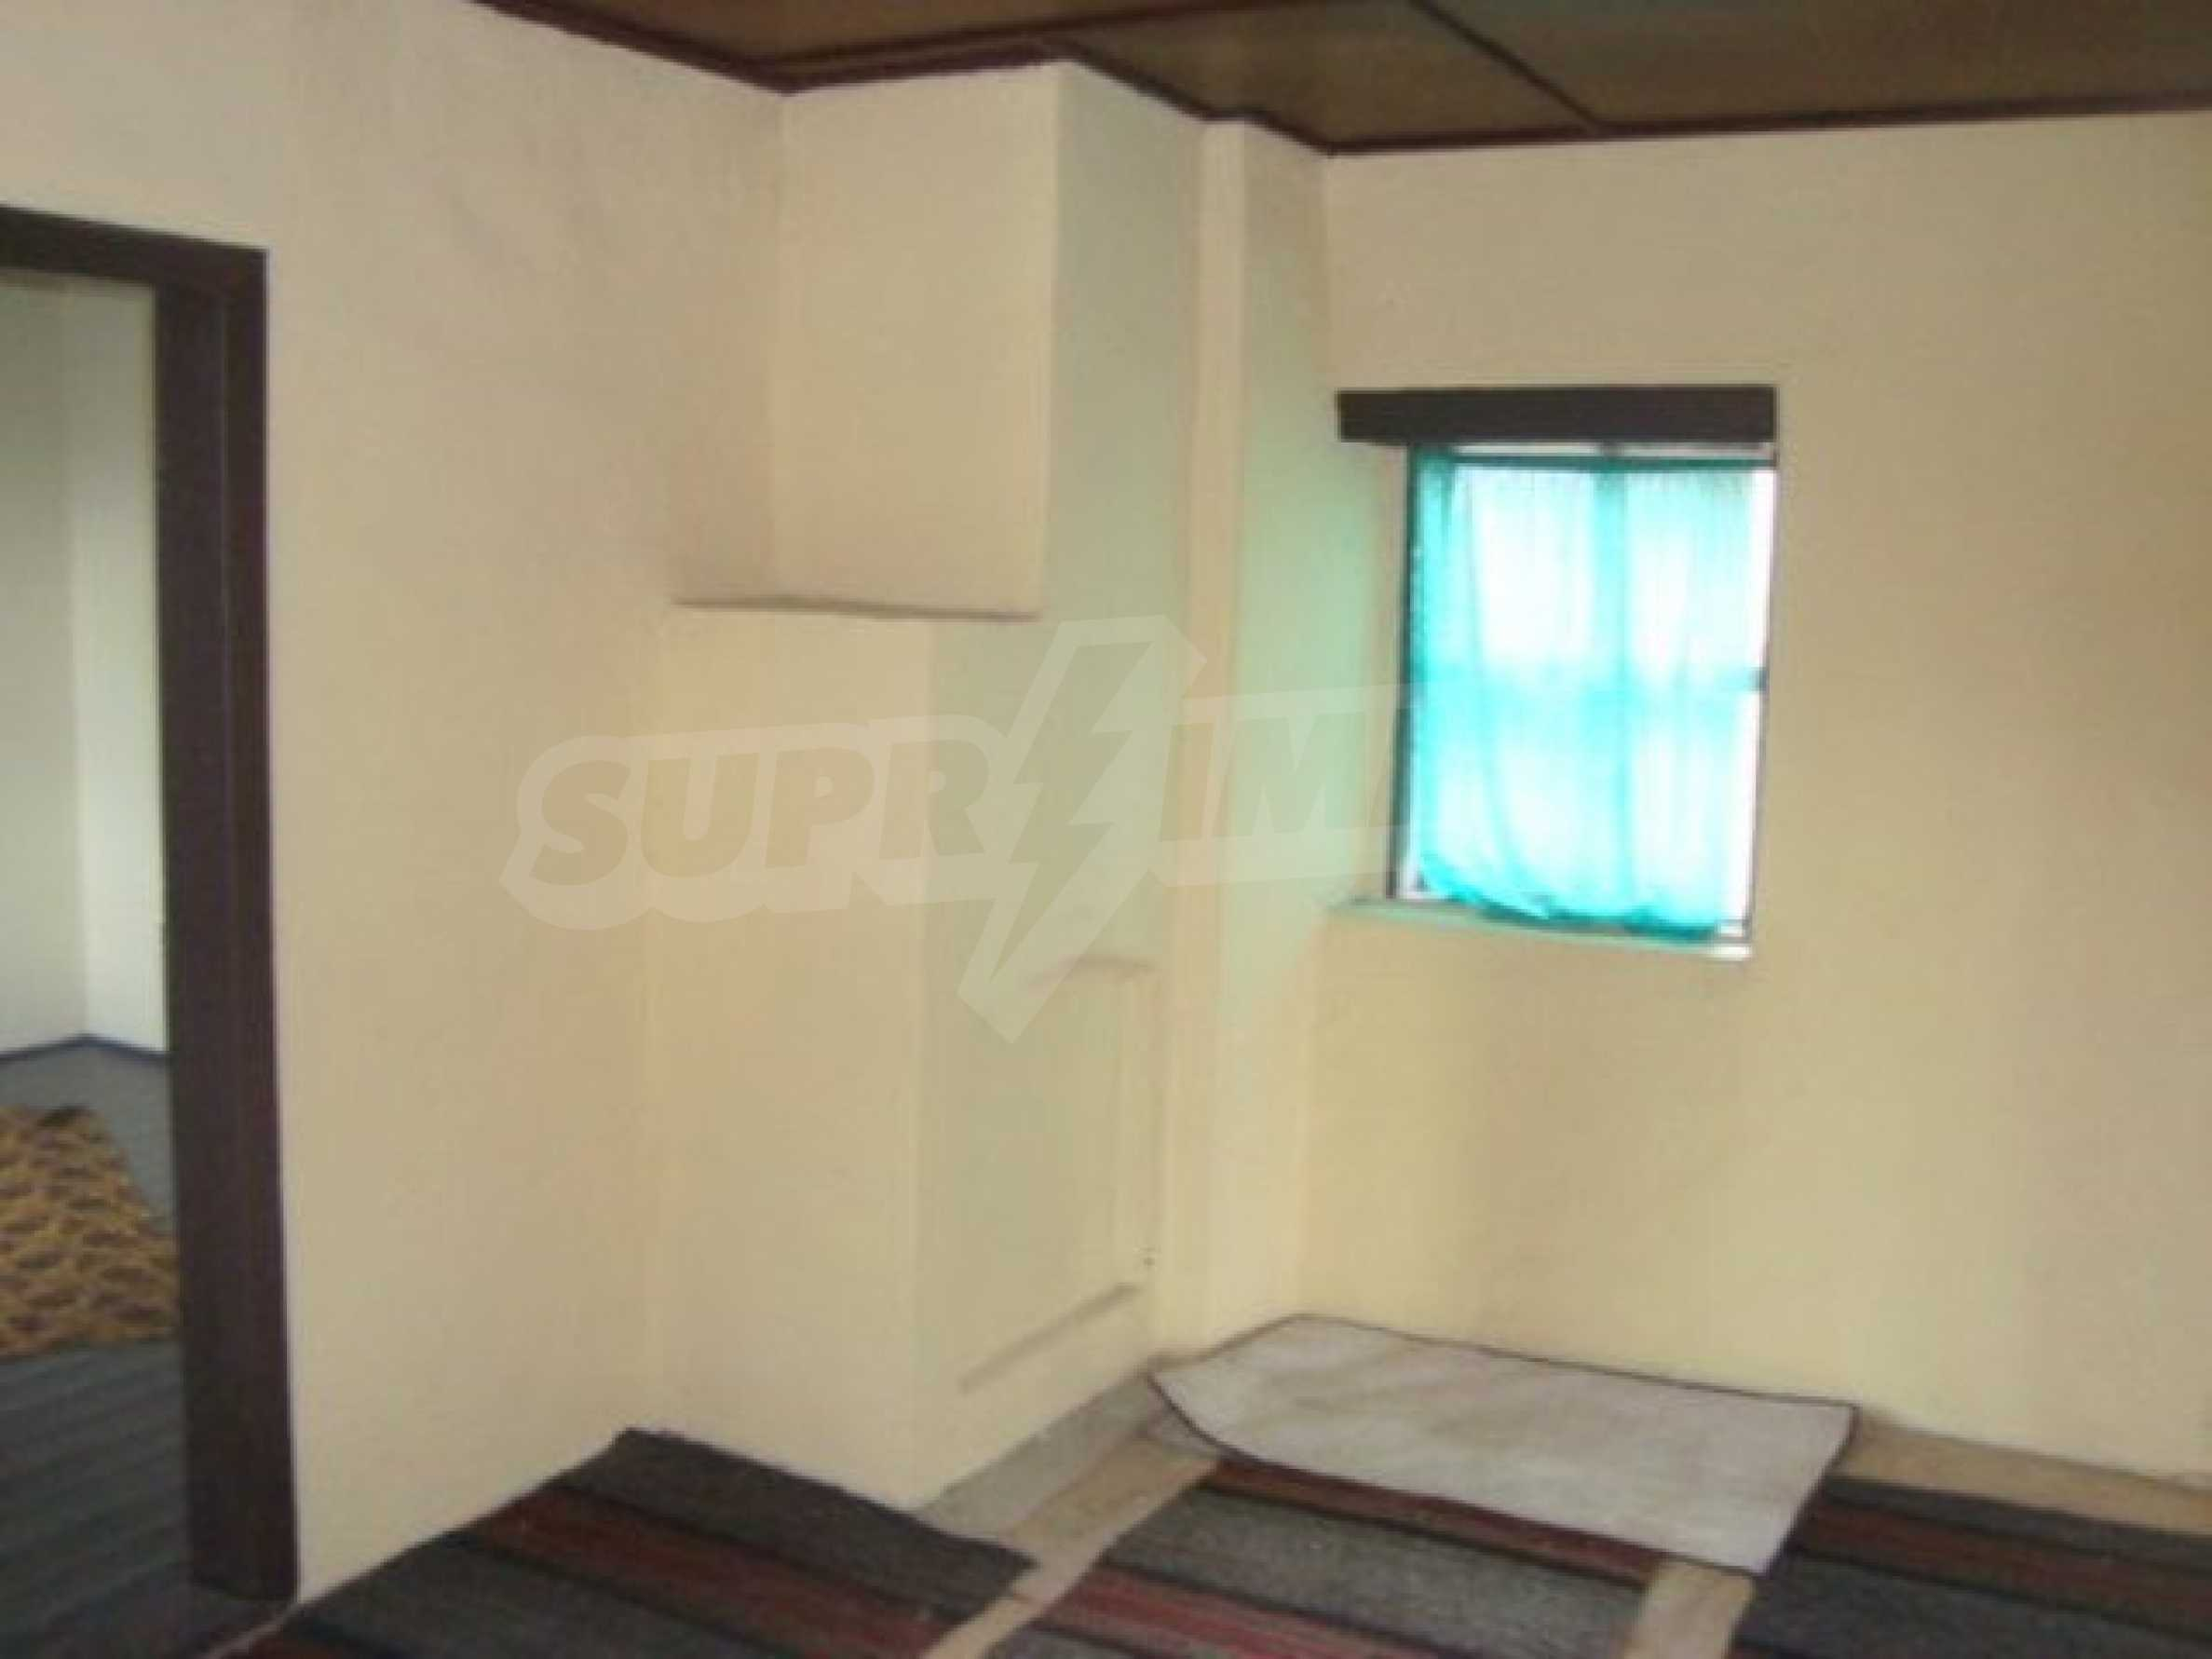 Two-storey house for sale in the village of Dolna Lipnitsa 6